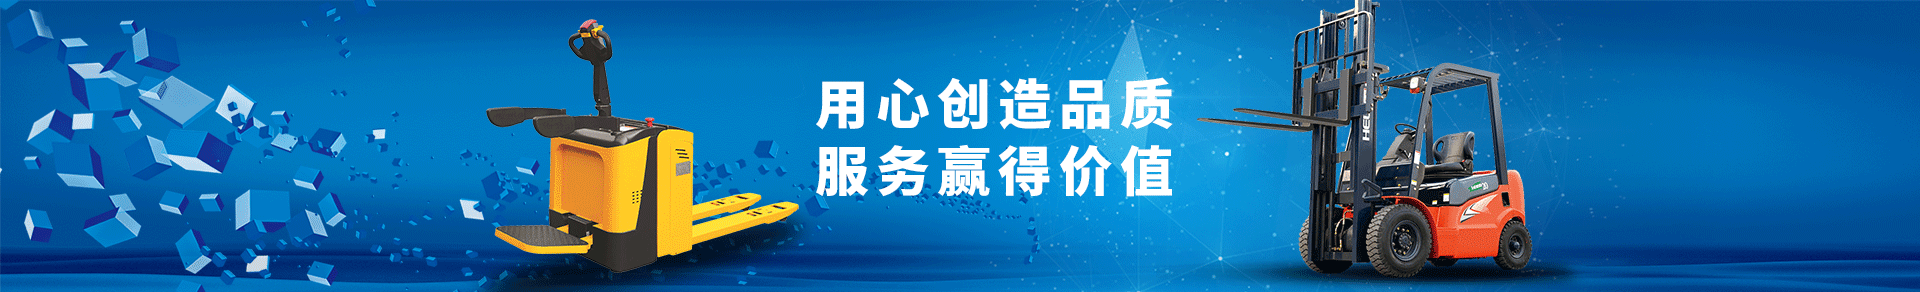 http://www.ytxilin.cn/data/images/slide/20190712141508_989.png